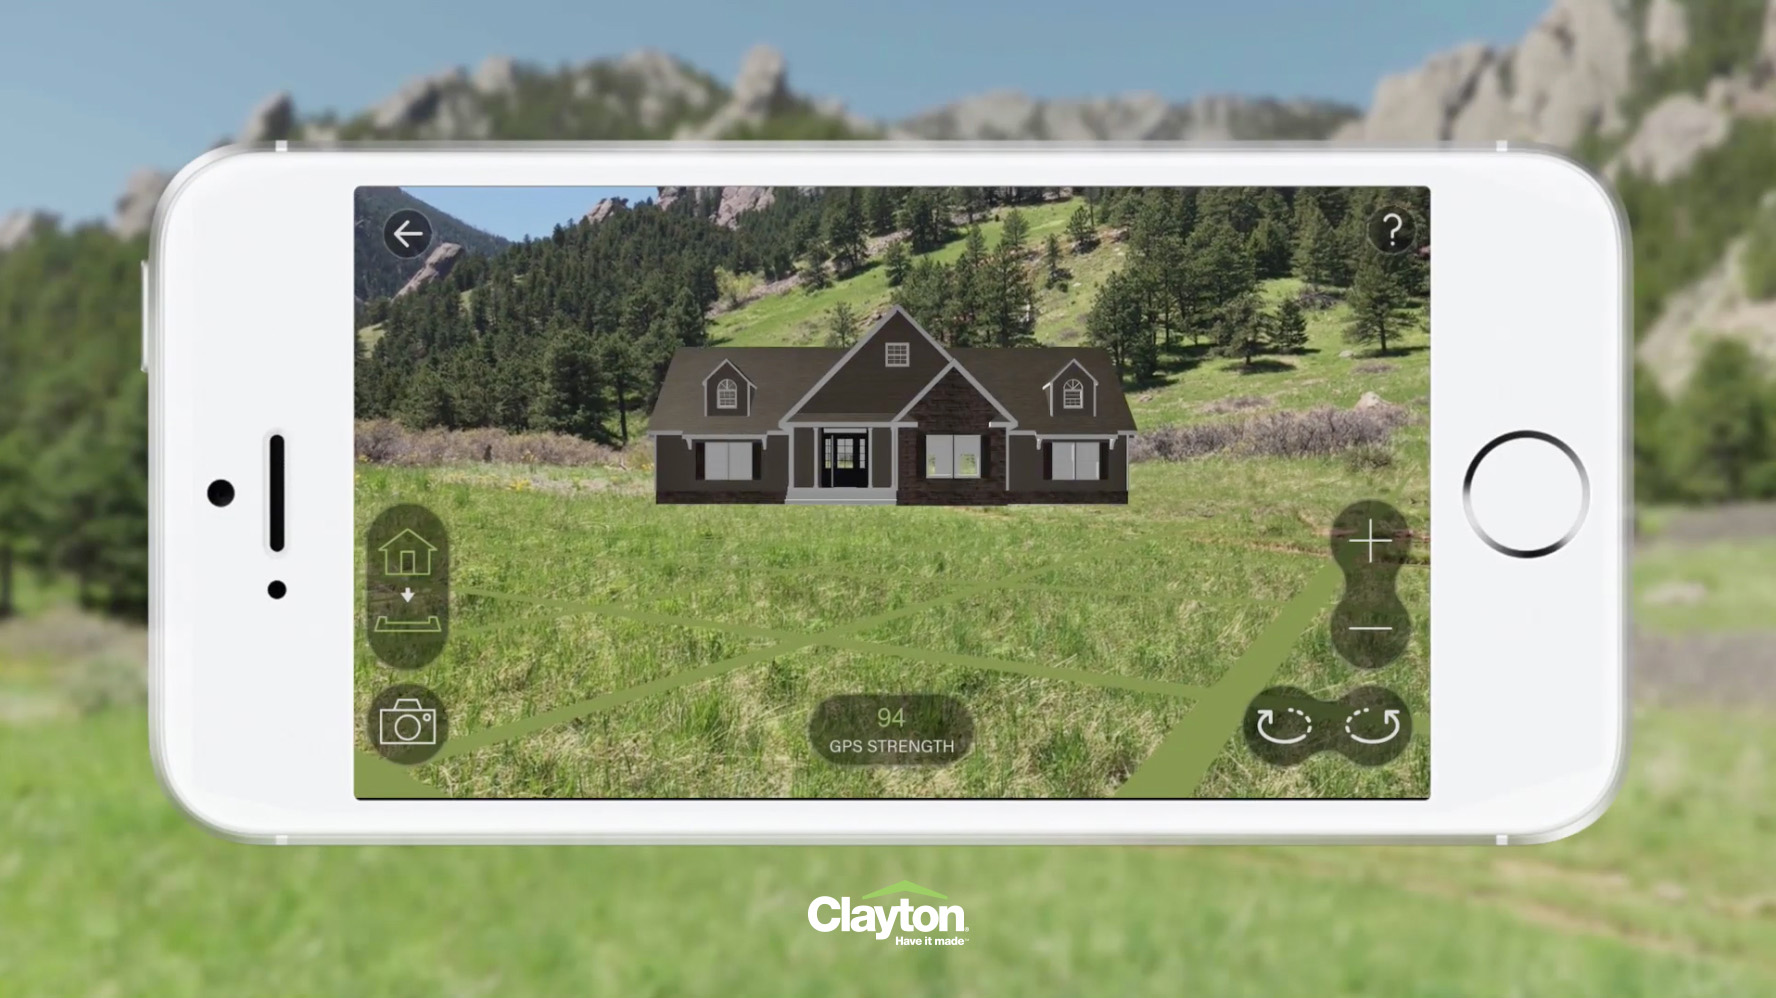 Preview what a home would look like on your future home site by positioning it in 3D